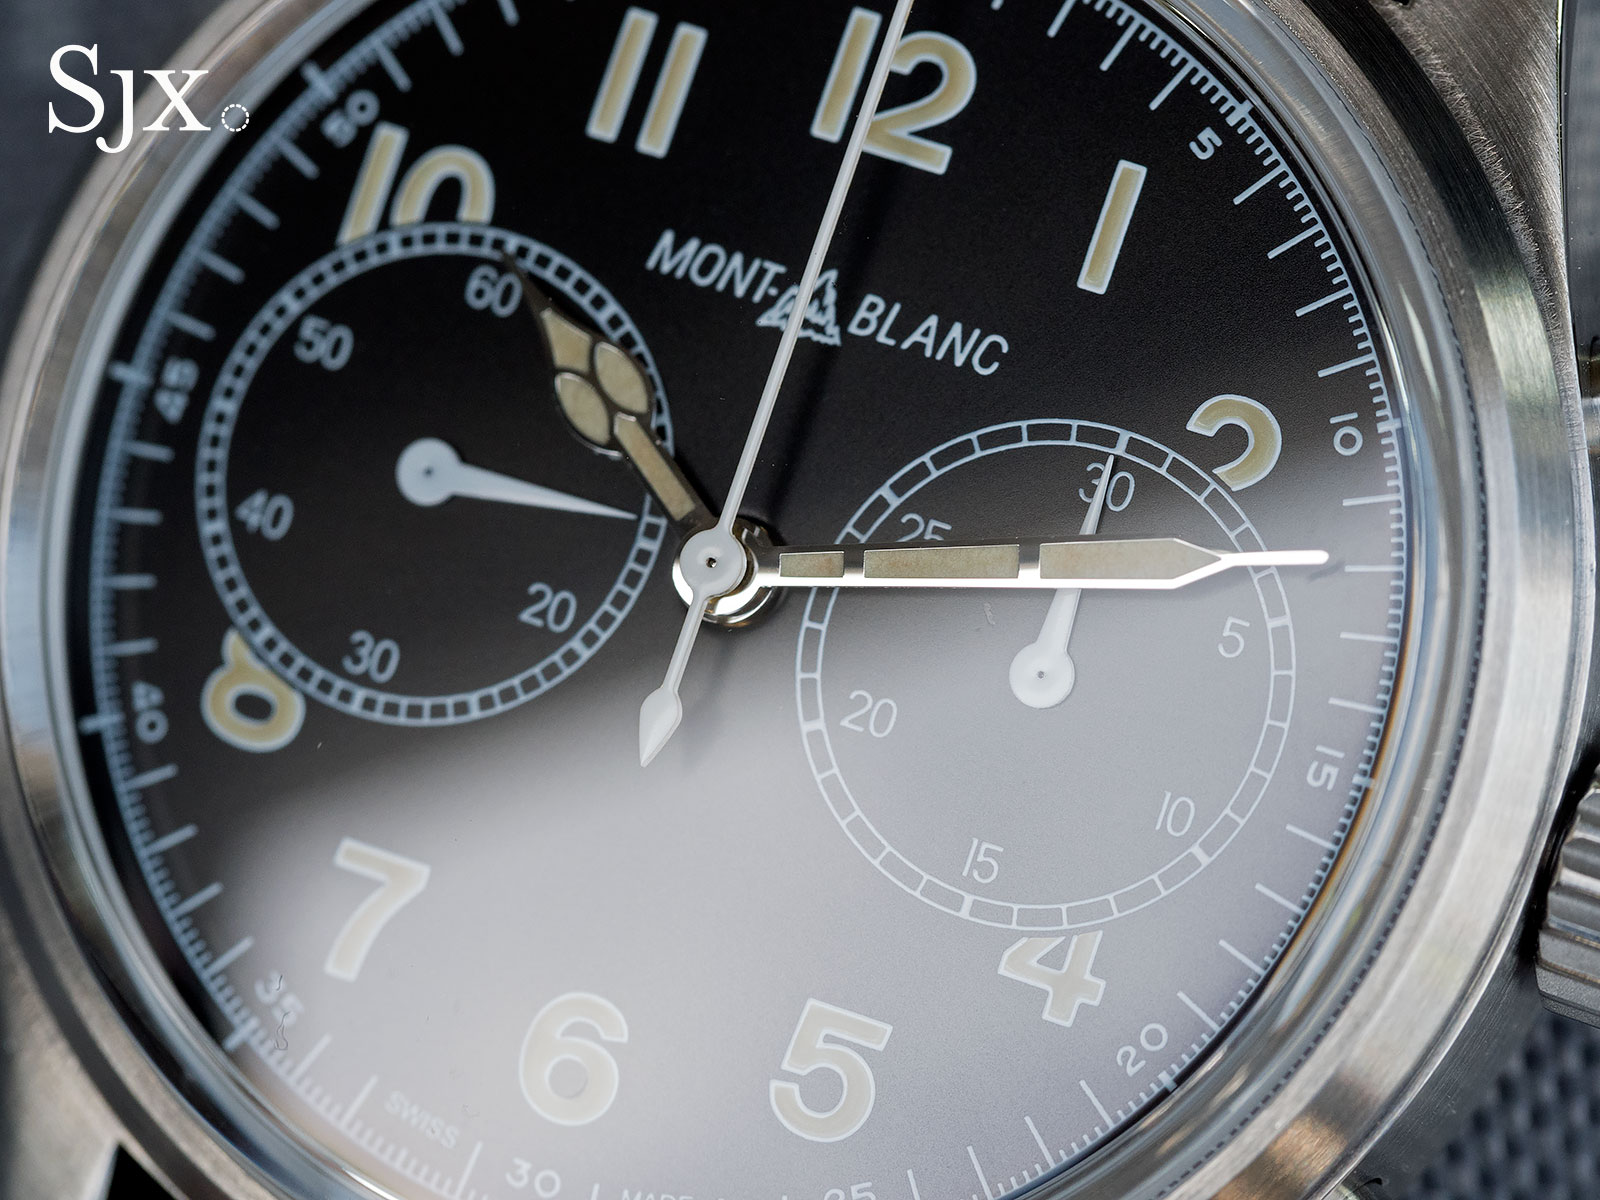 Montblanc 1858 Automatic Chronograph 4